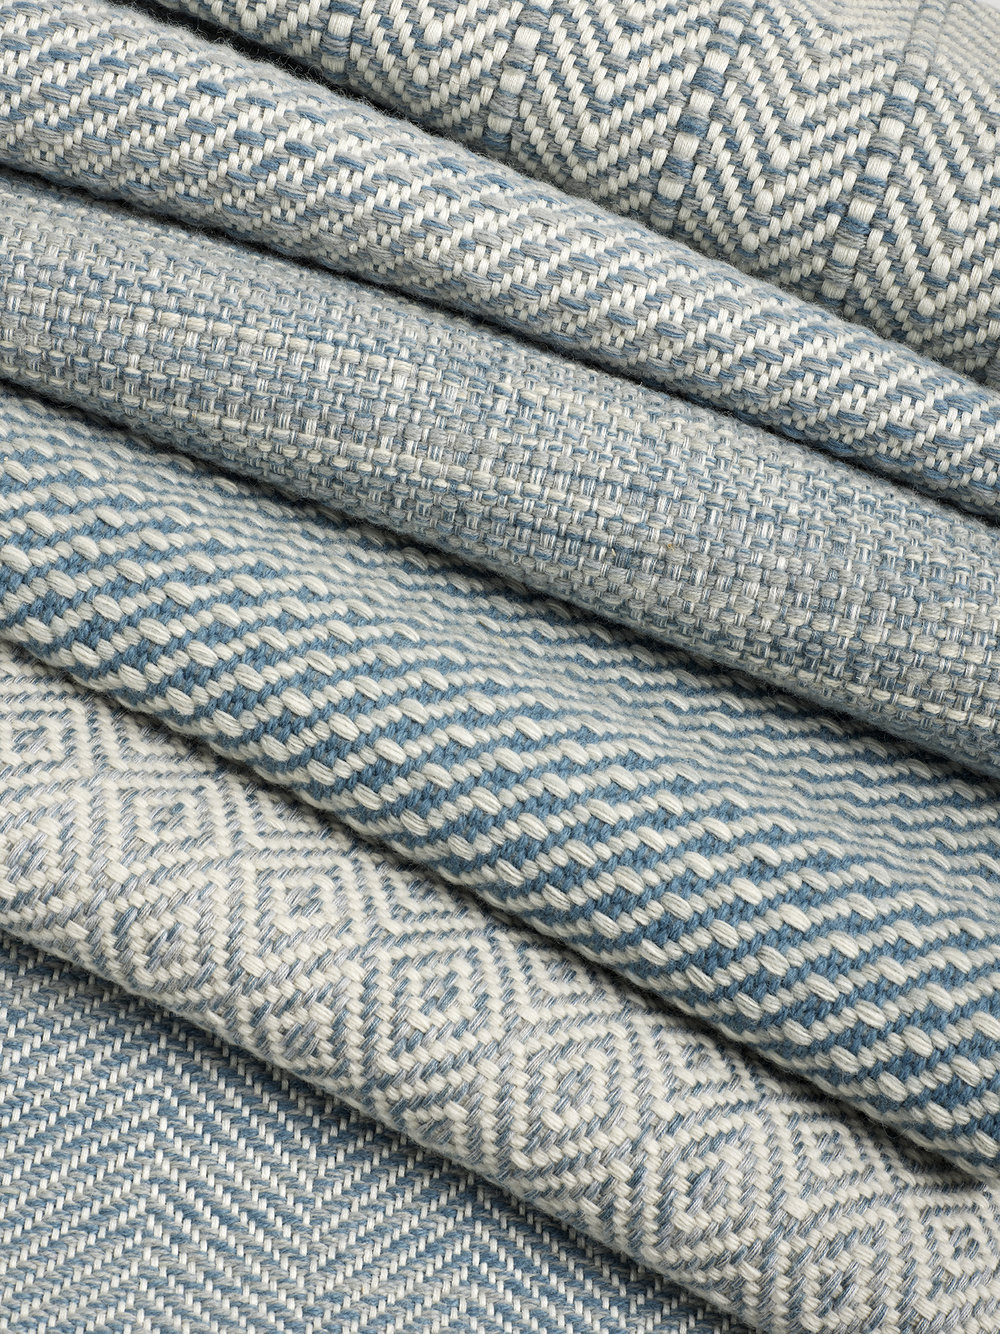 A stack of hand-woven rugs in neutral colors with different geometric patterns.